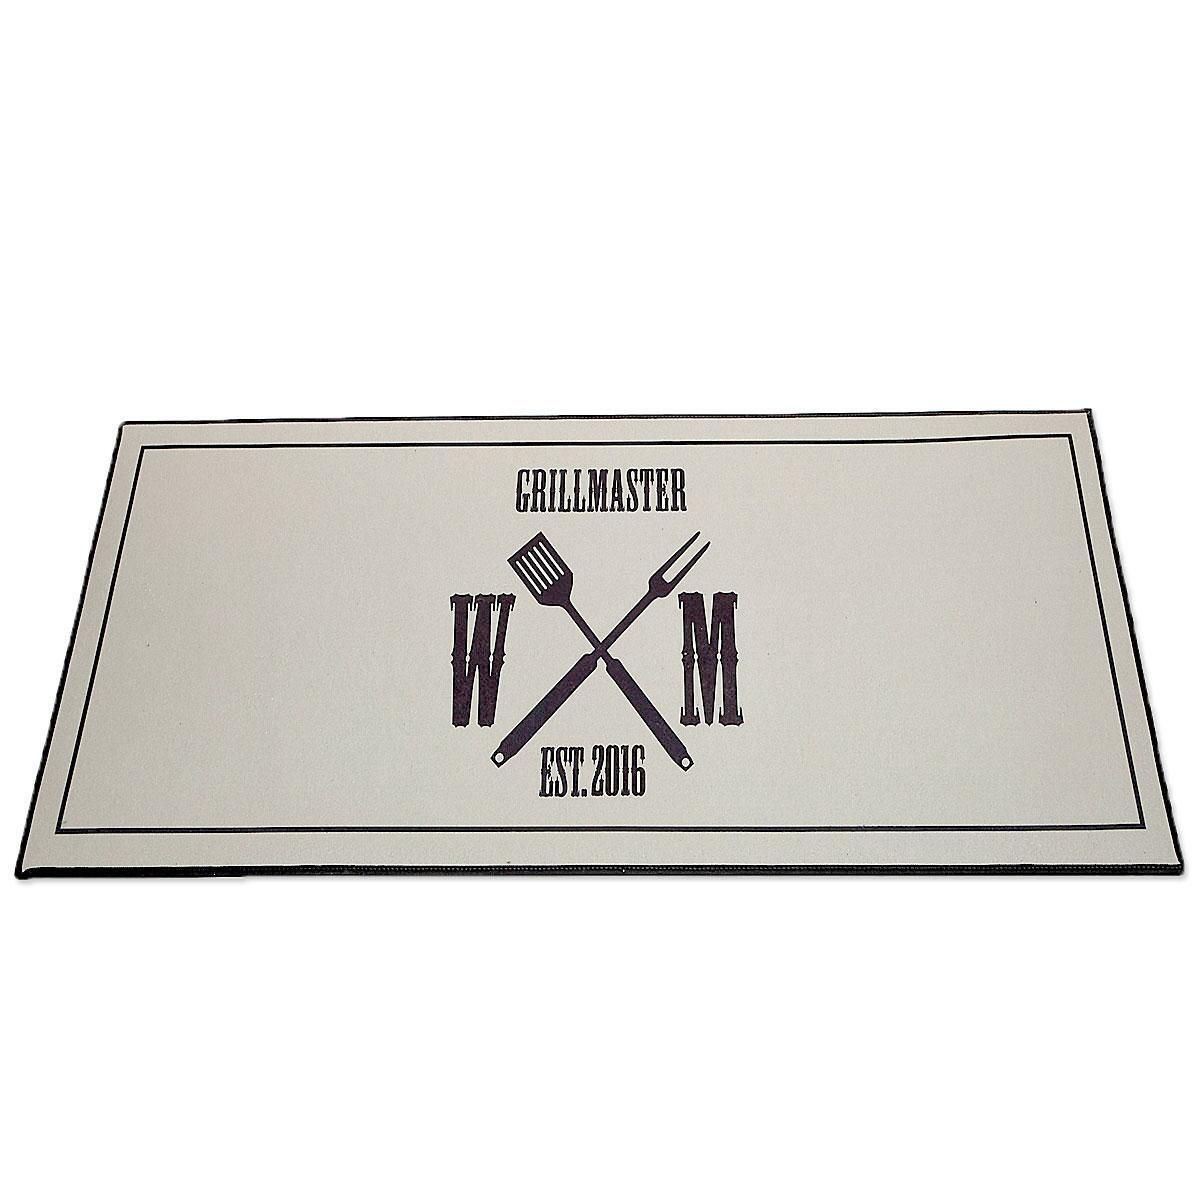 Grillmaster Personalized Doormat